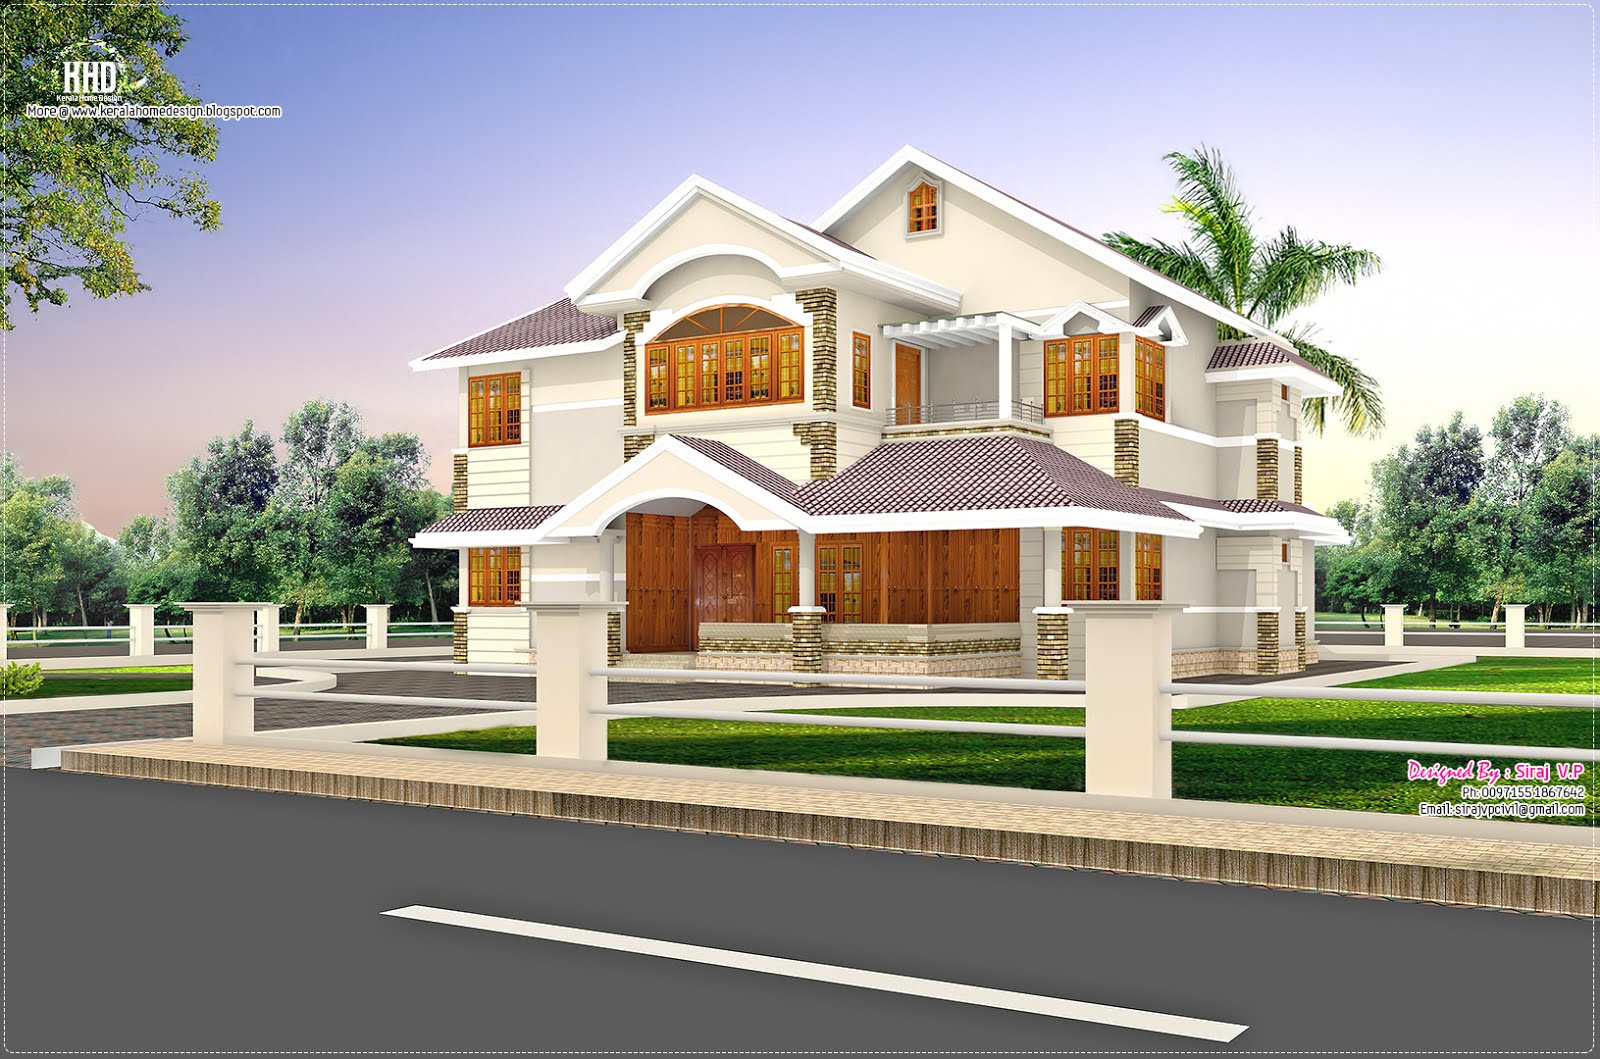 Home design 3d 3d home architect